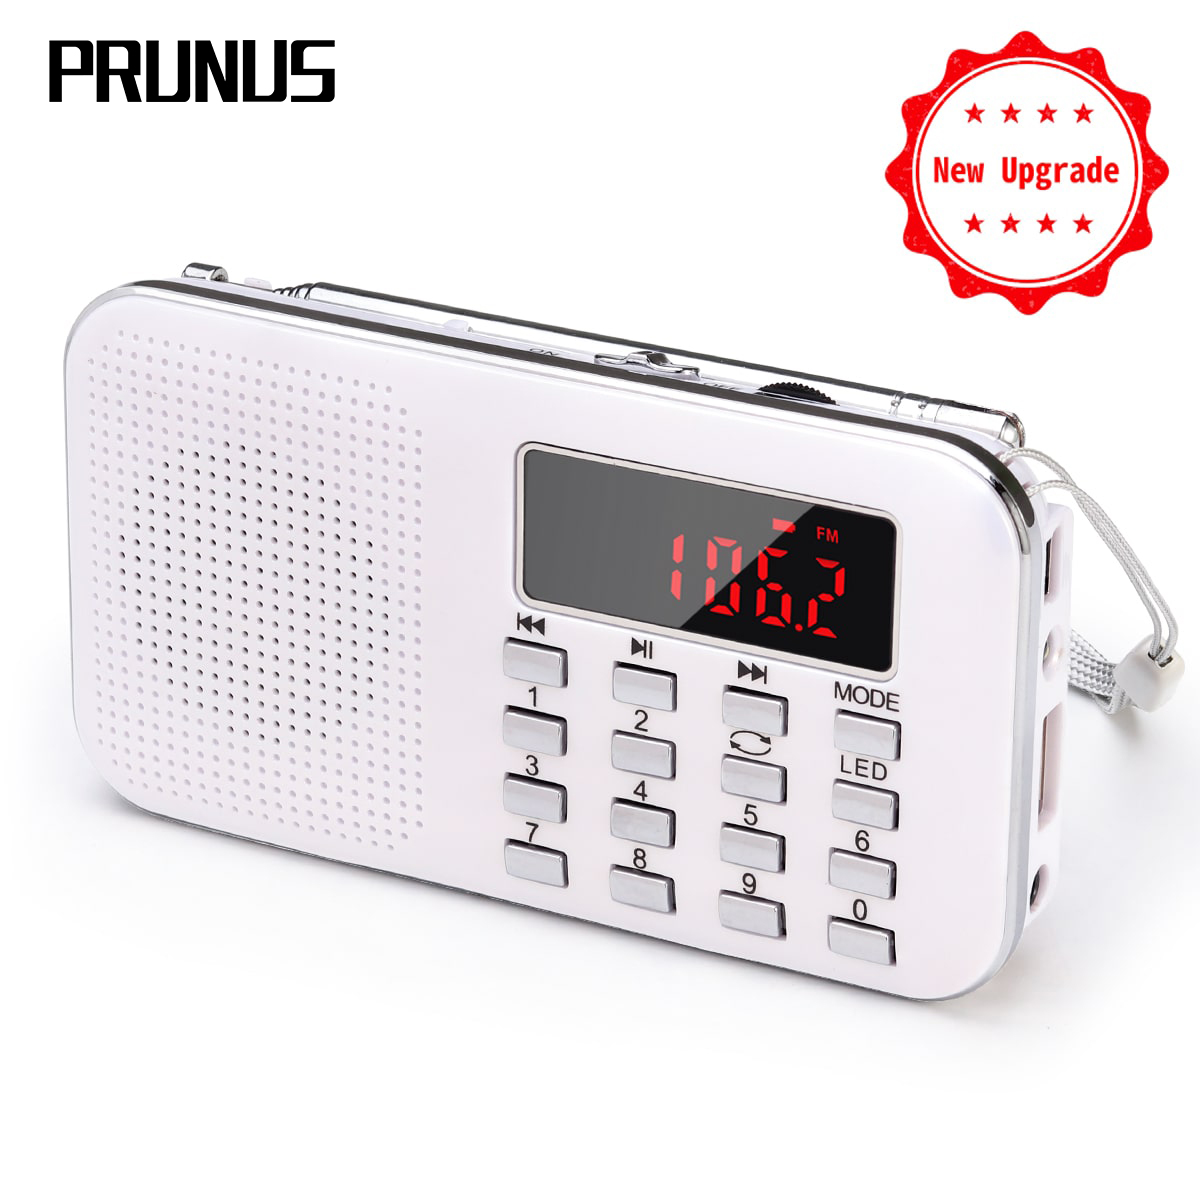 PRUNUS L-218 Mini Portable Digital Radio Receiver AM / FM /MP3/SD 32G Emergency Flashlight Radio Stereo Speaker 1200mAh Battery